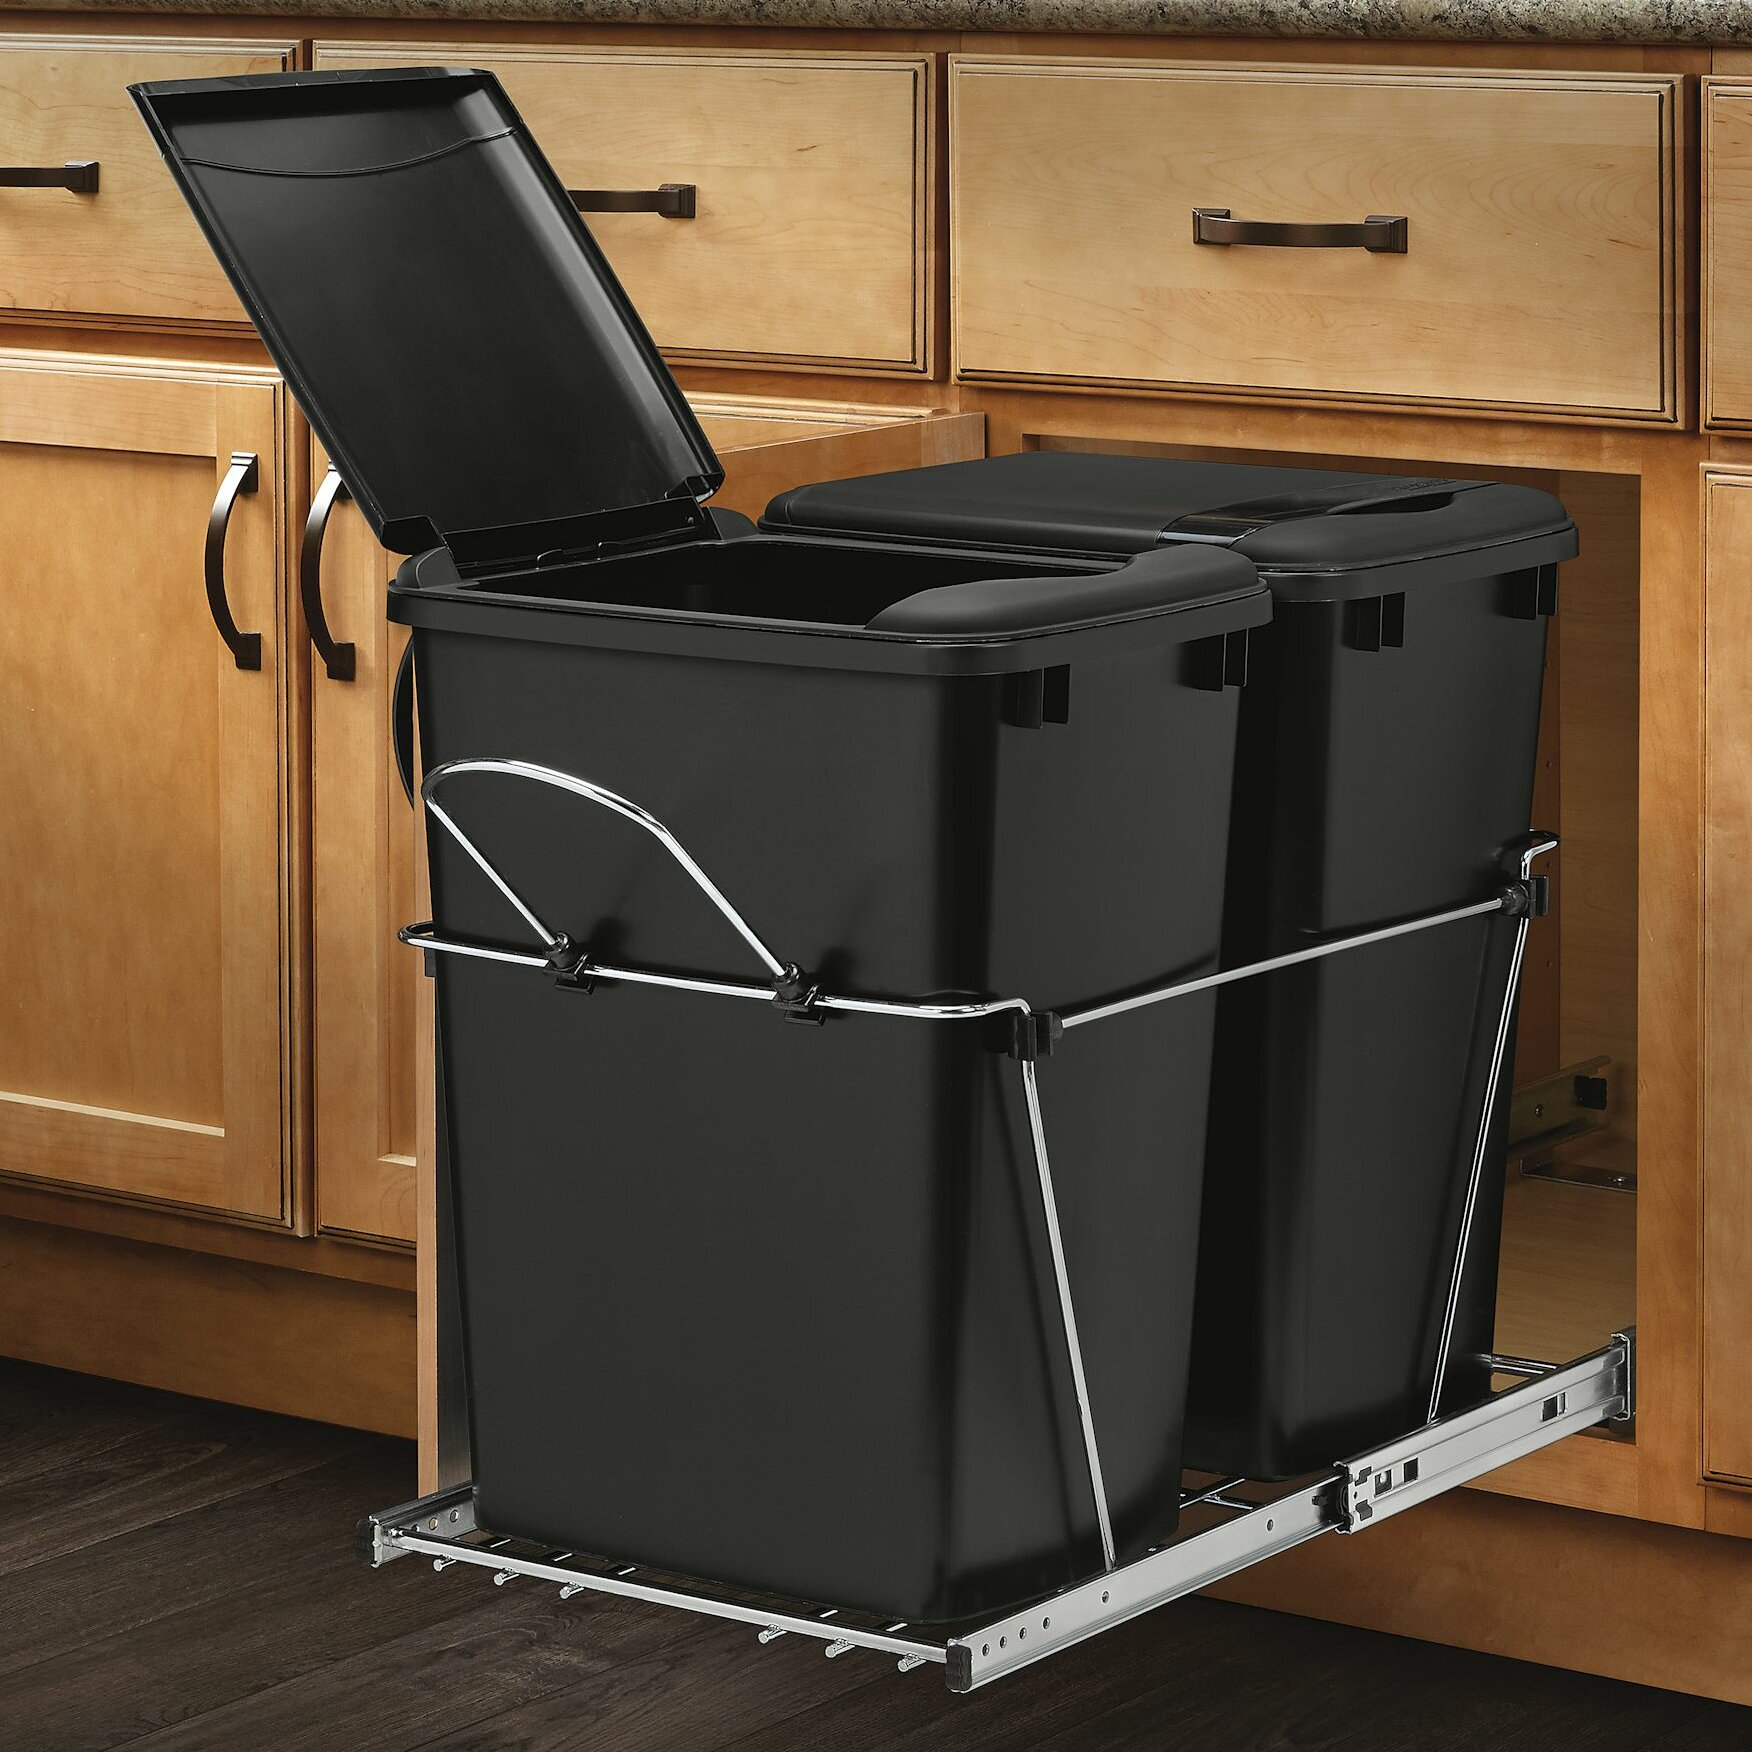 rev a shelf double gallon roll out waste container. Black Bedroom Furniture Sets. Home Design Ideas